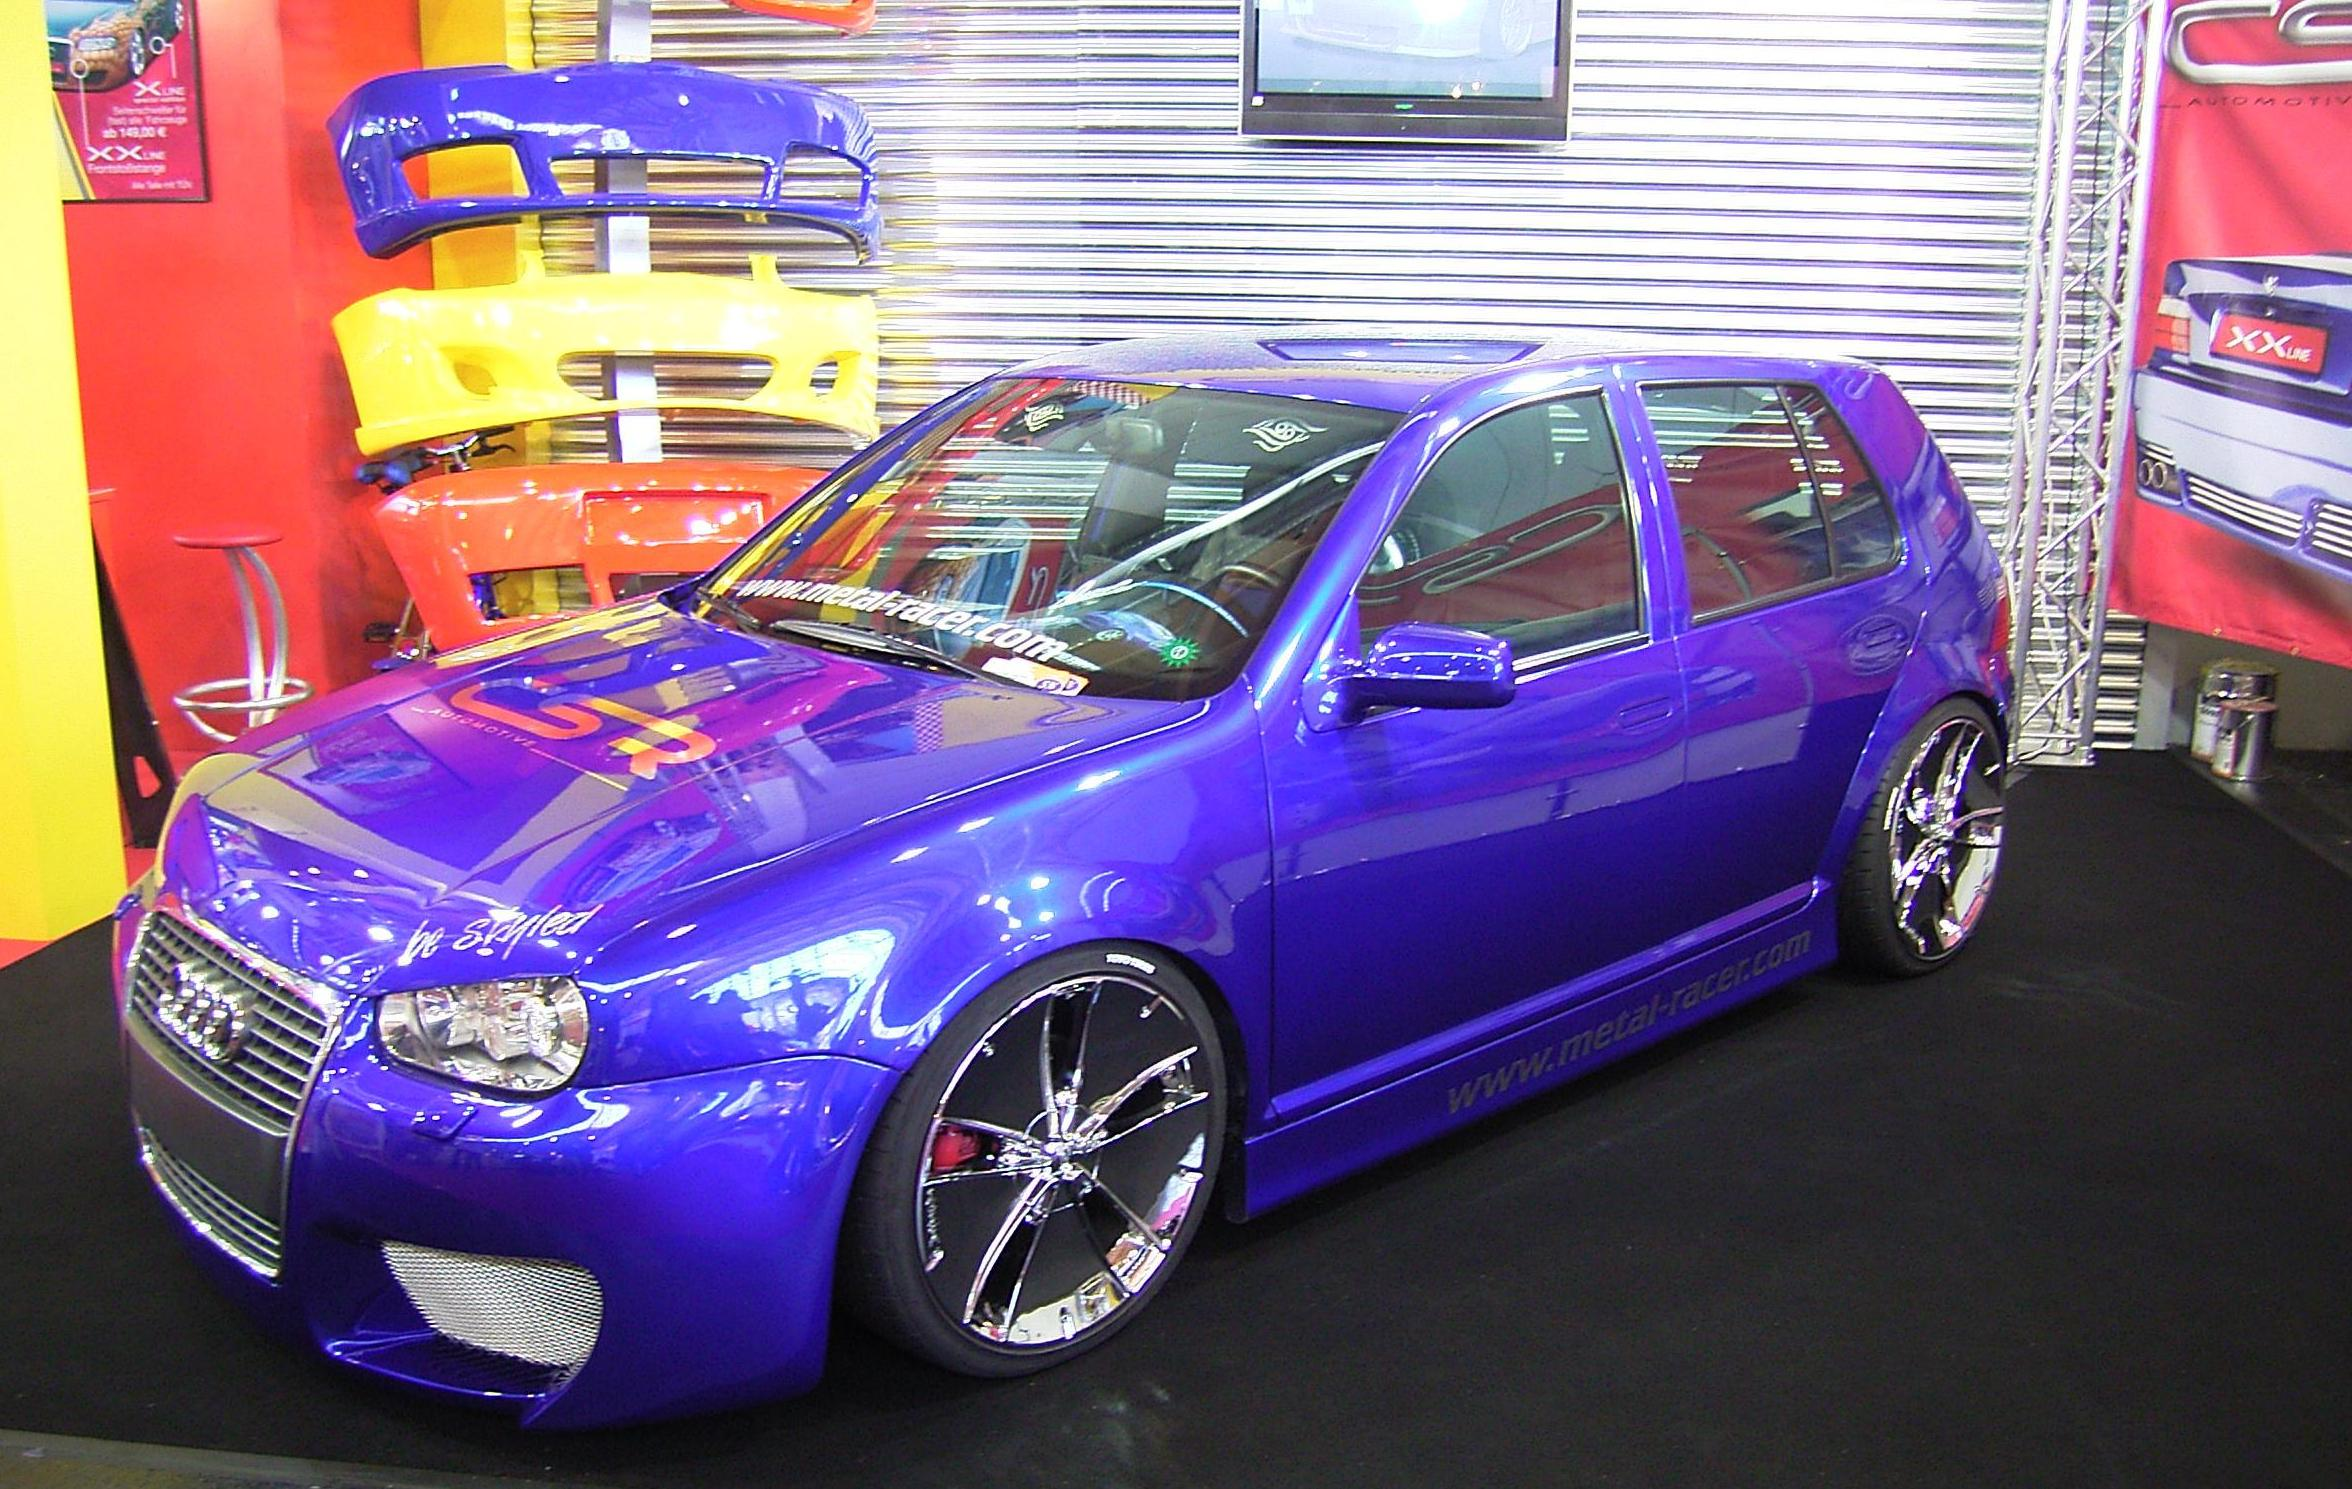 VW_Golf_IV_with_Audi_A3_mask